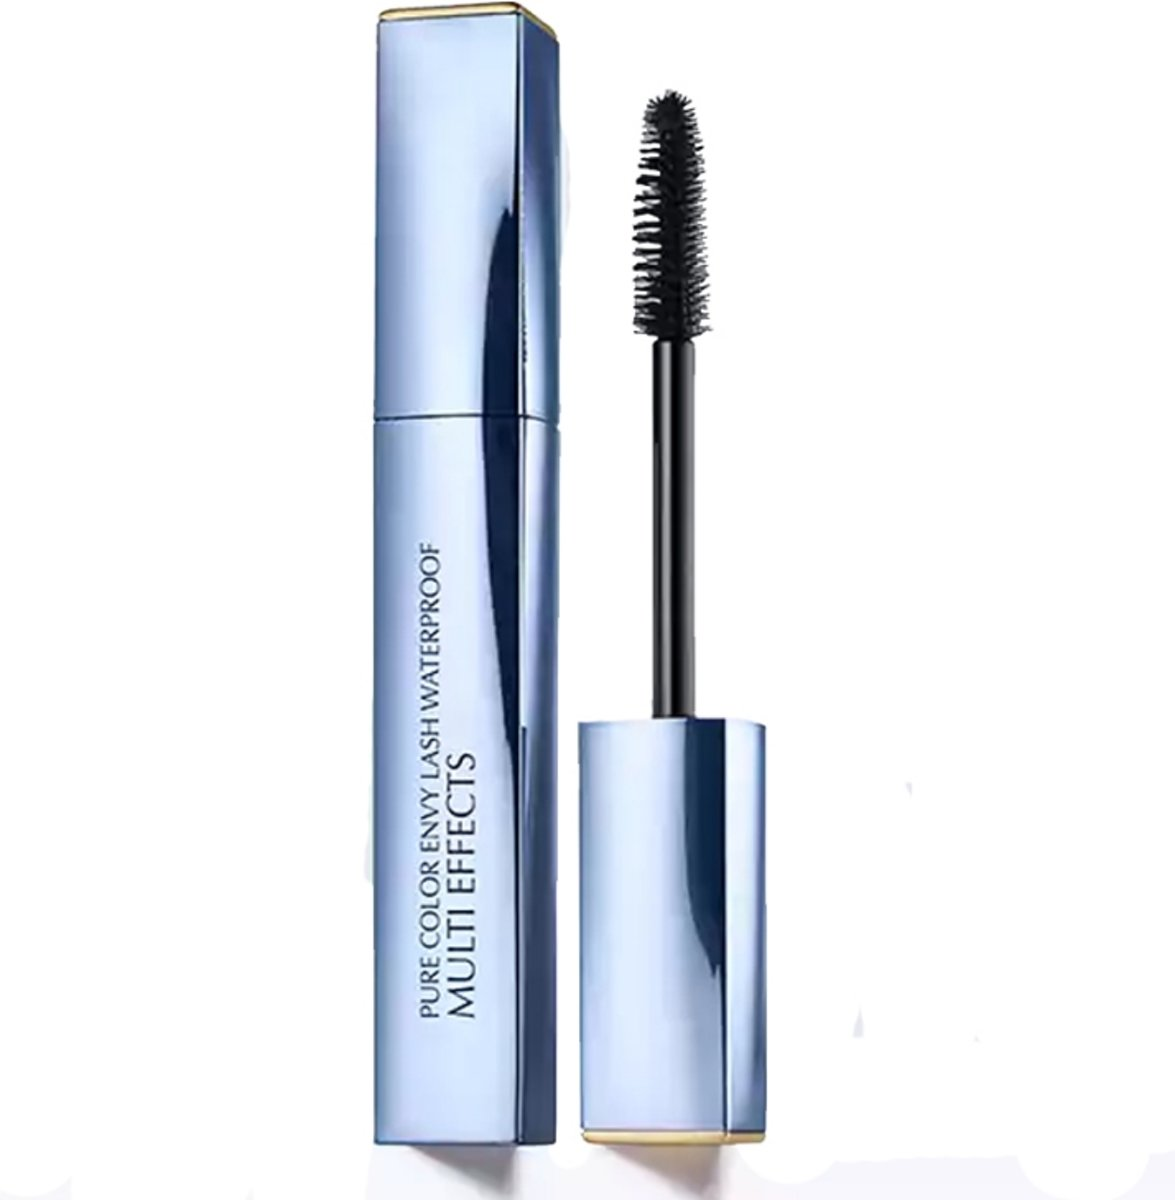 Estée Lauder Pure Color Envy Lash Mascara - Waterproof 6 ml - Black